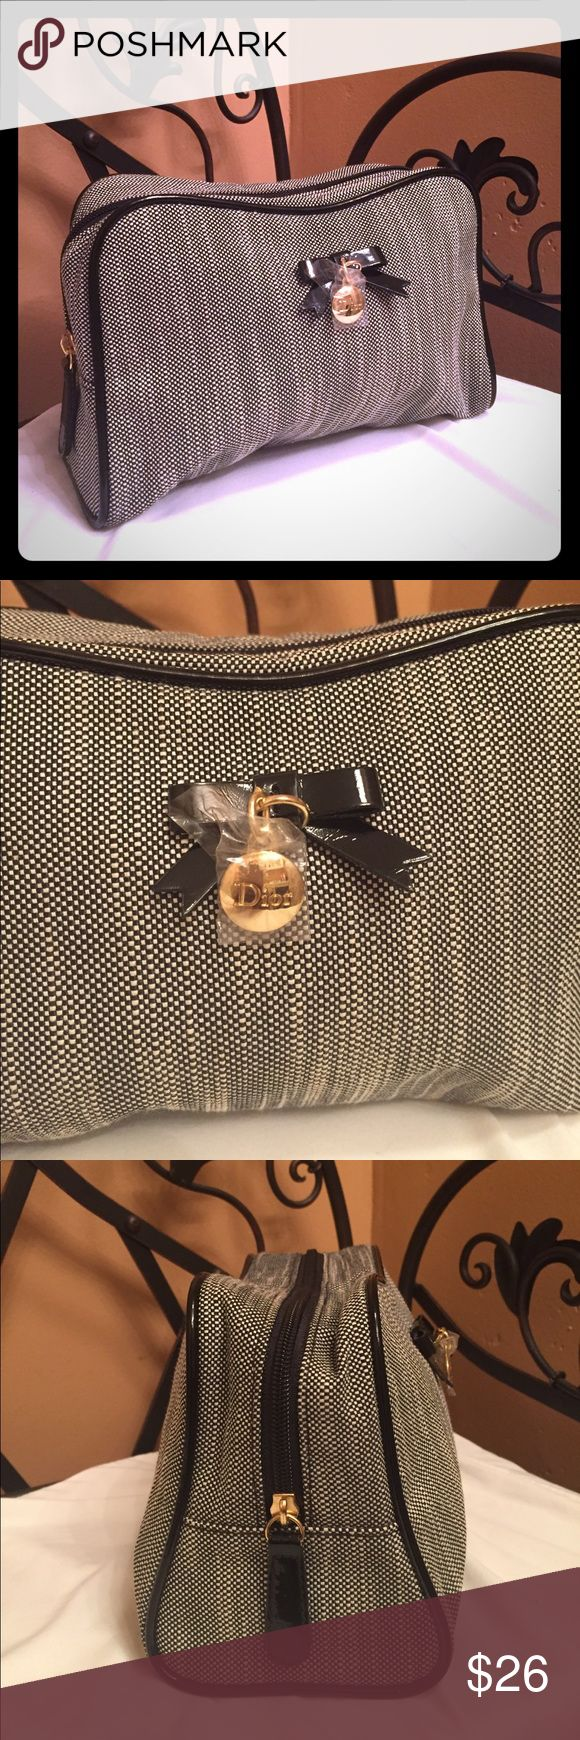 NWOT Dior Parfums Cosmetic Bag Never Used. Dior Parfum Bag. Can be use for comestic and makeup carrier : ) Black Patent Leather Bow, Gold Dior Charm, Black Patent Leather Piping around Cosmetic case Dior Bags Cosmetic Bags & Cases